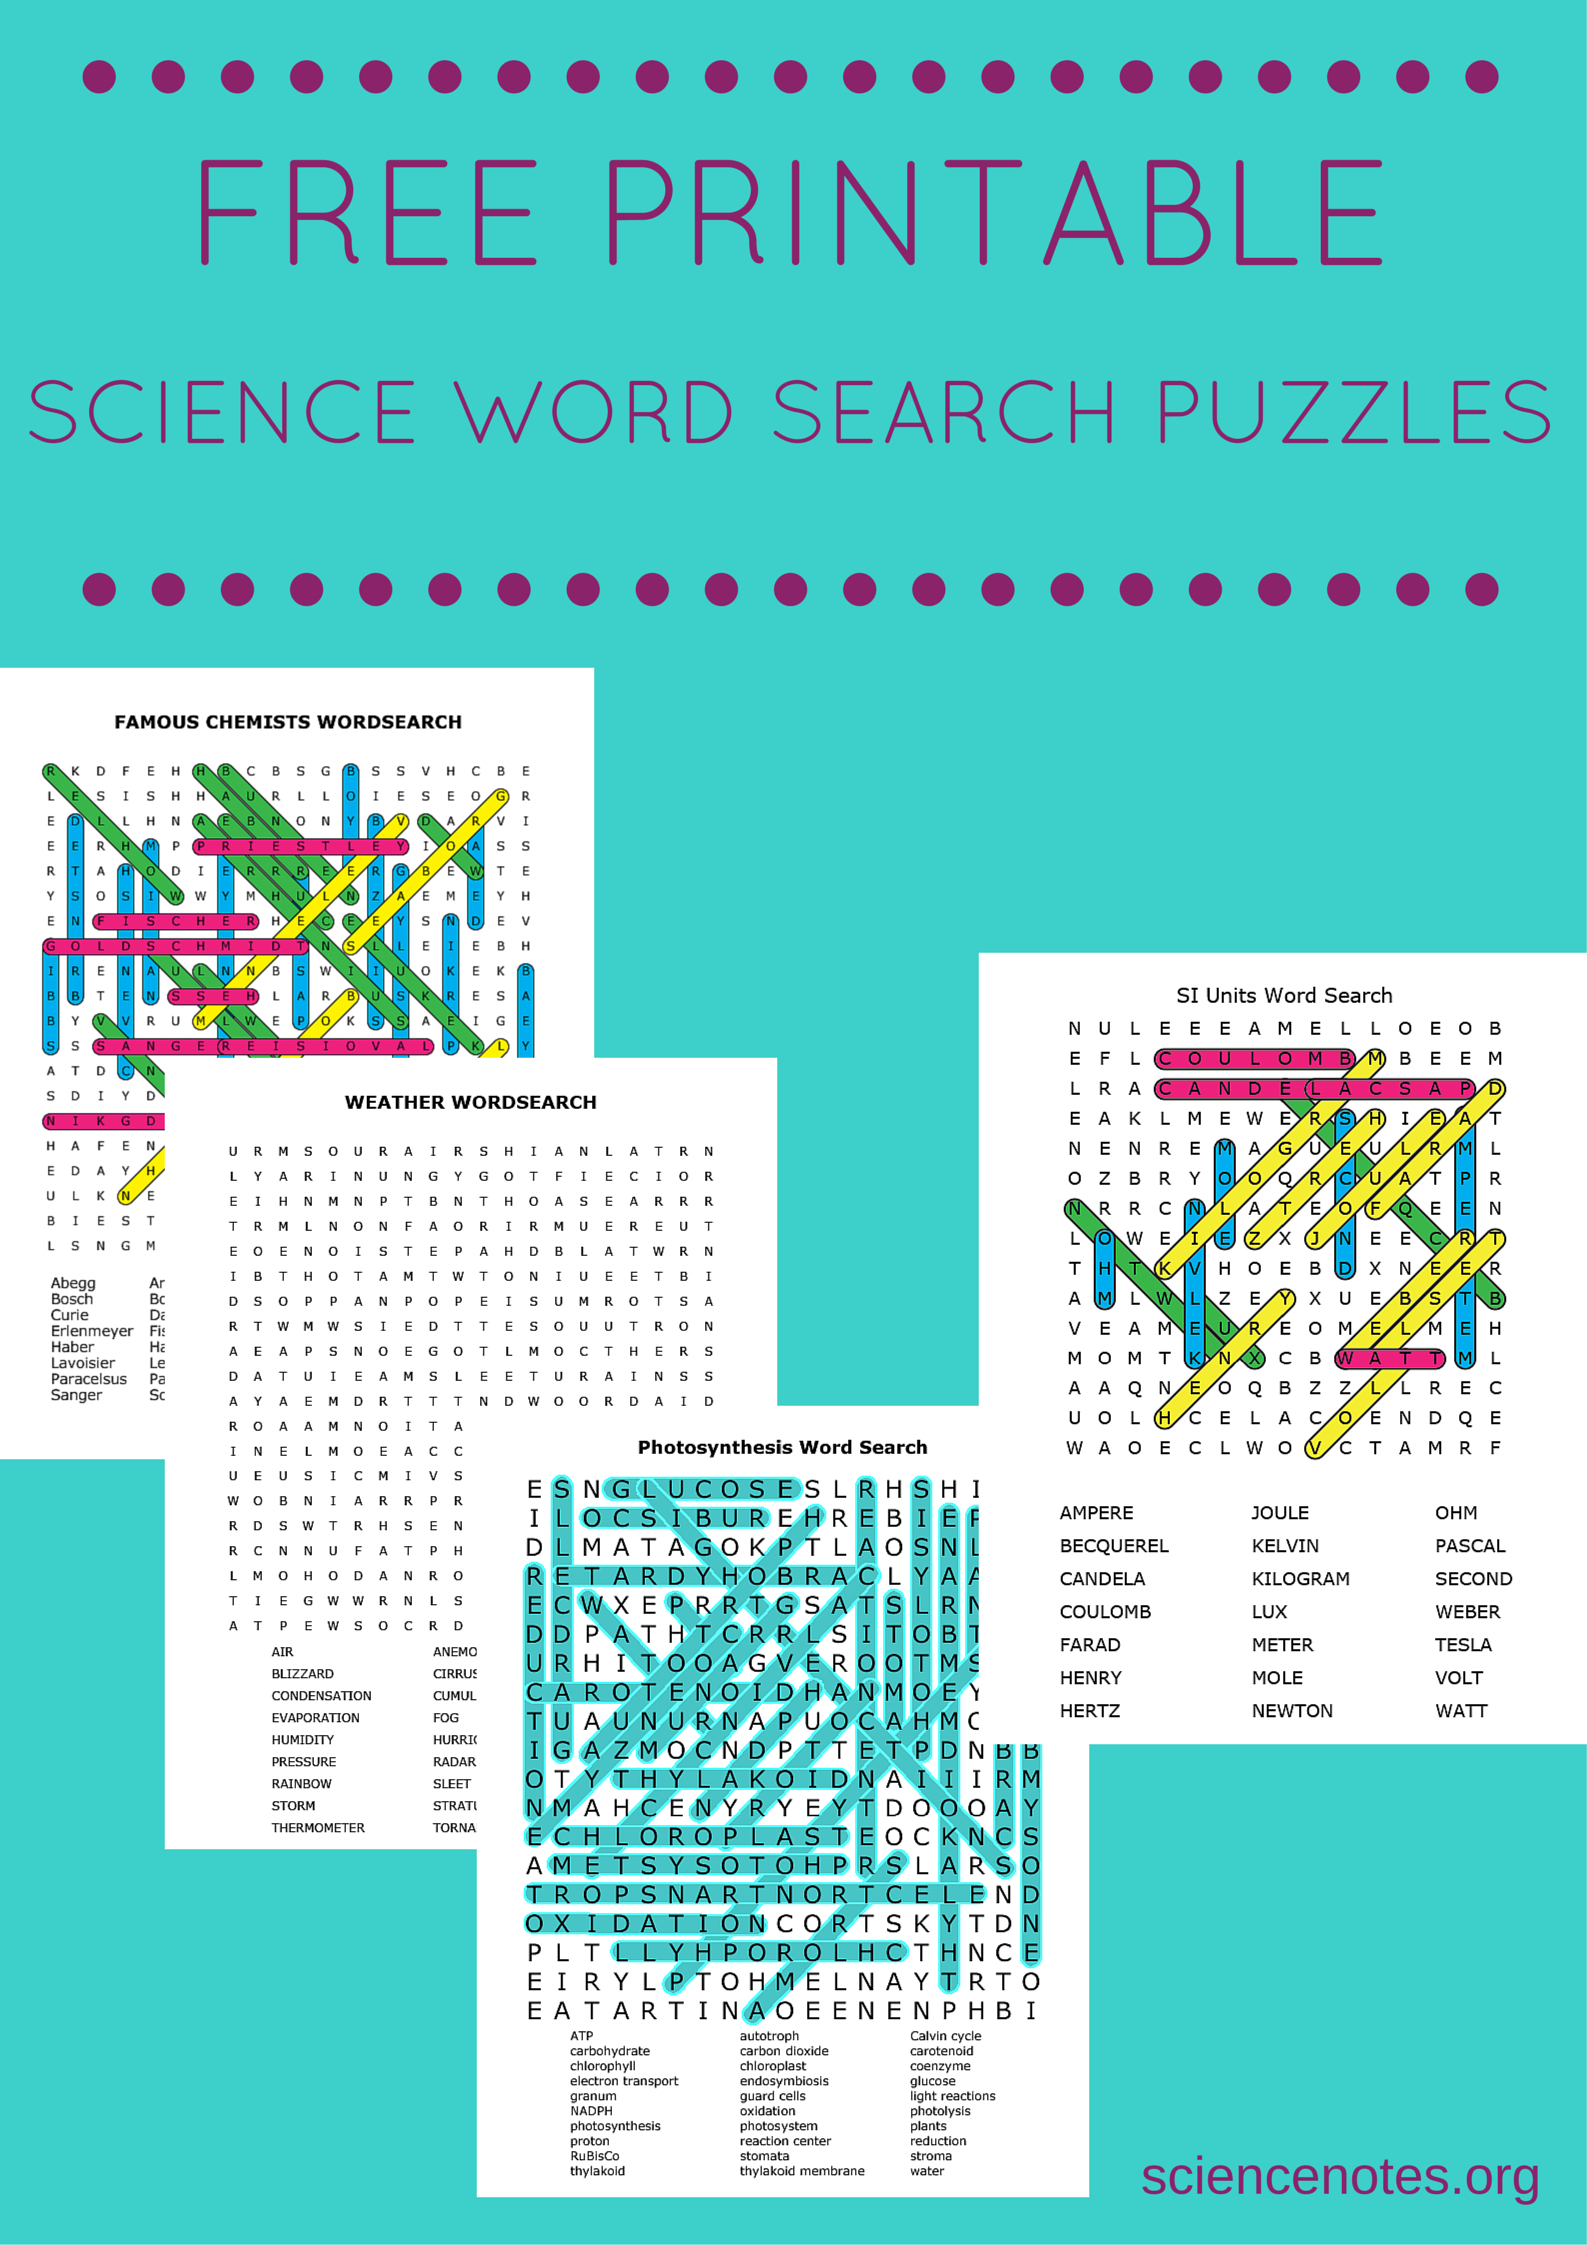 Free Printable Science Word Search Puzzles - Printable Crossword Word Search Puzzles